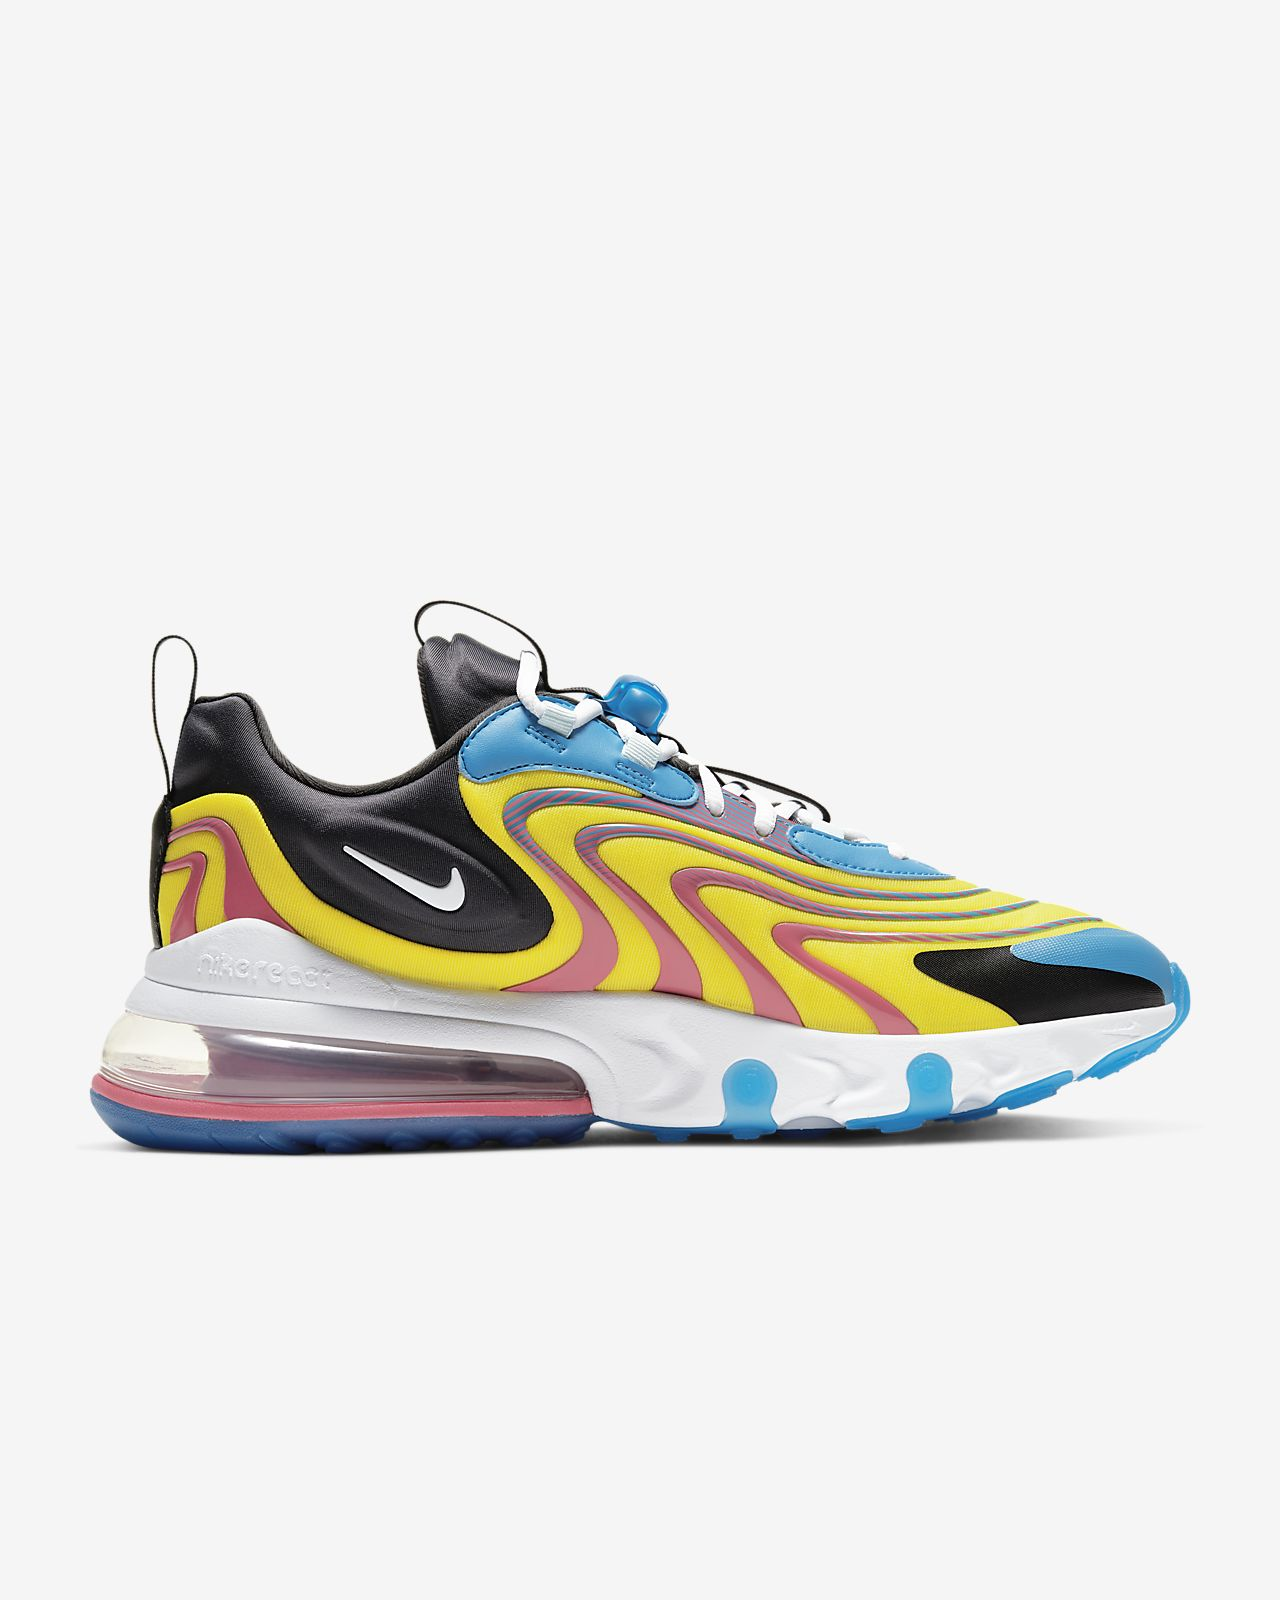 Nike Air Max 270 React ENG M BlackObsidianSapphire